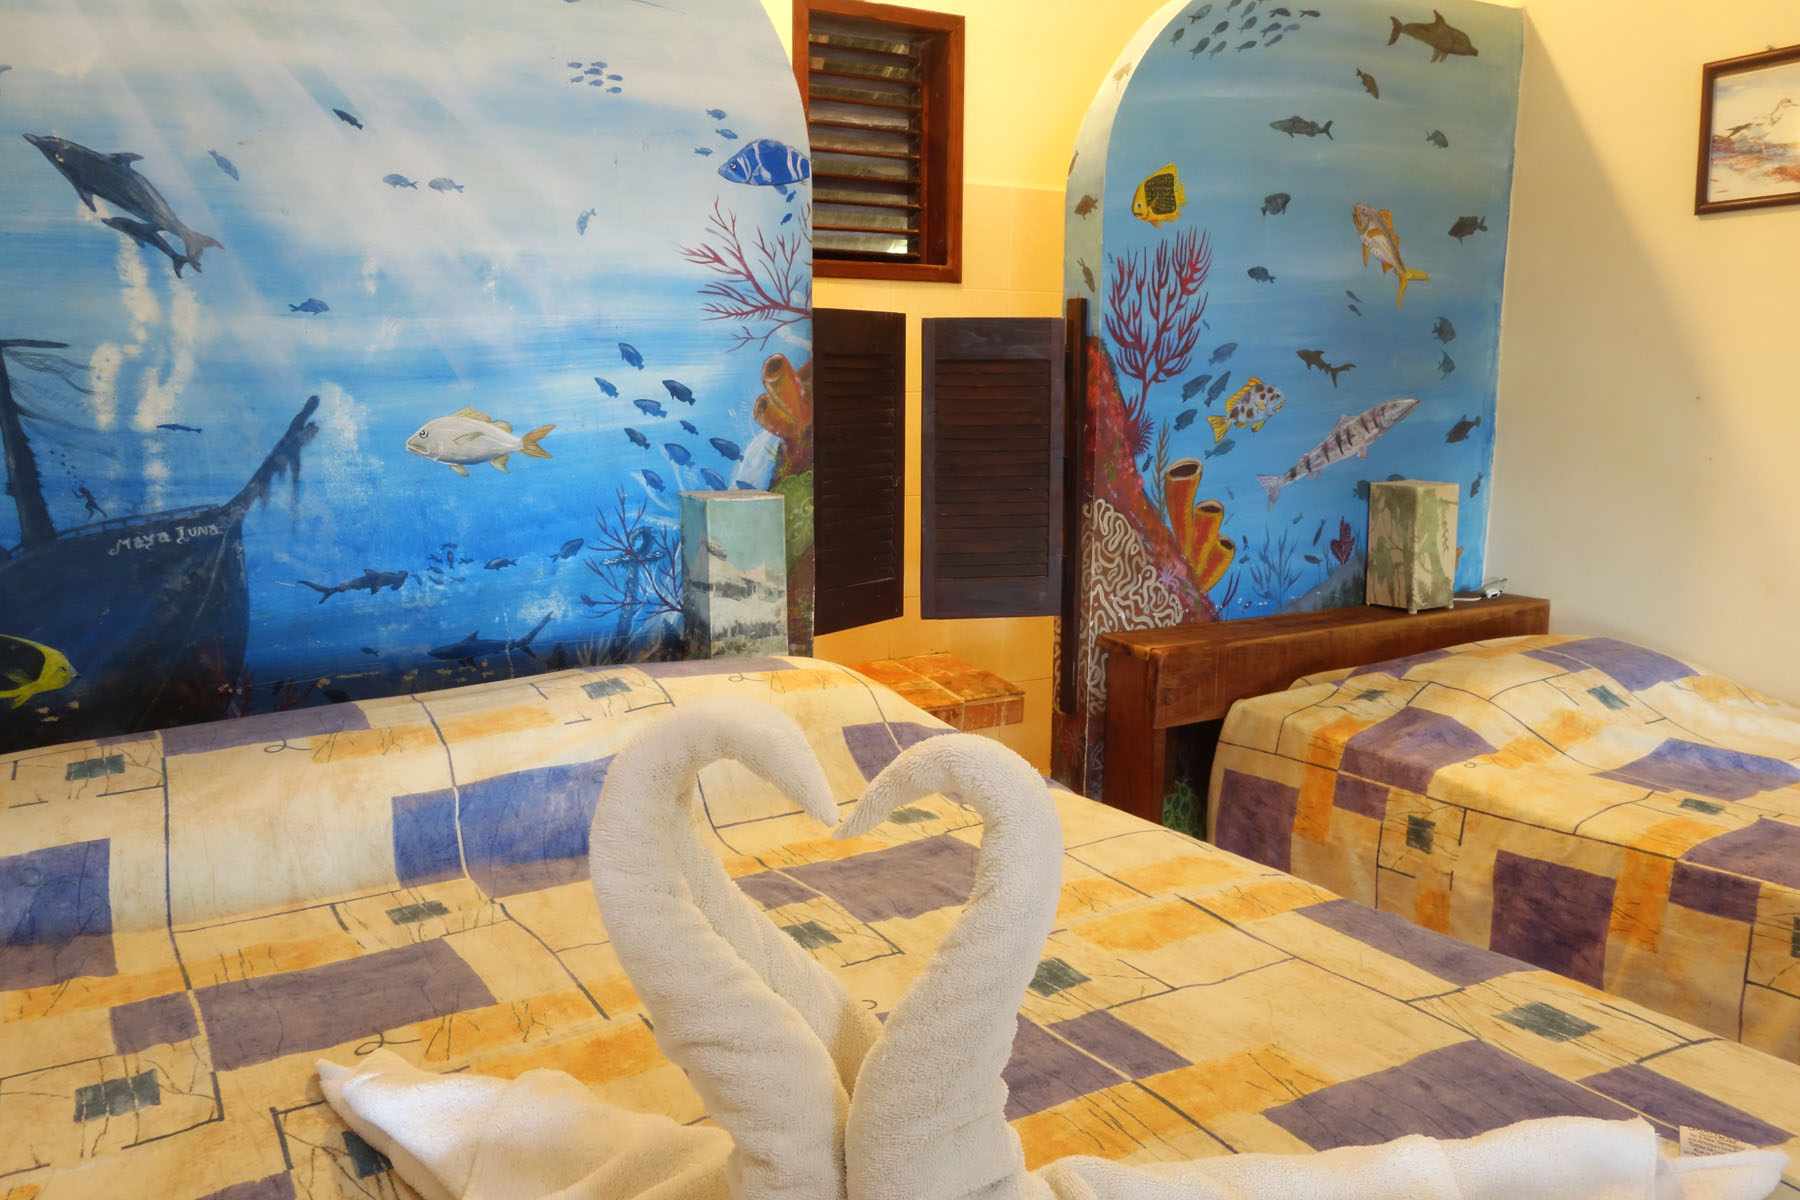 Hotel Maya Luna Mahahual Bungalow Chinchorro 2 beds with murals and swans